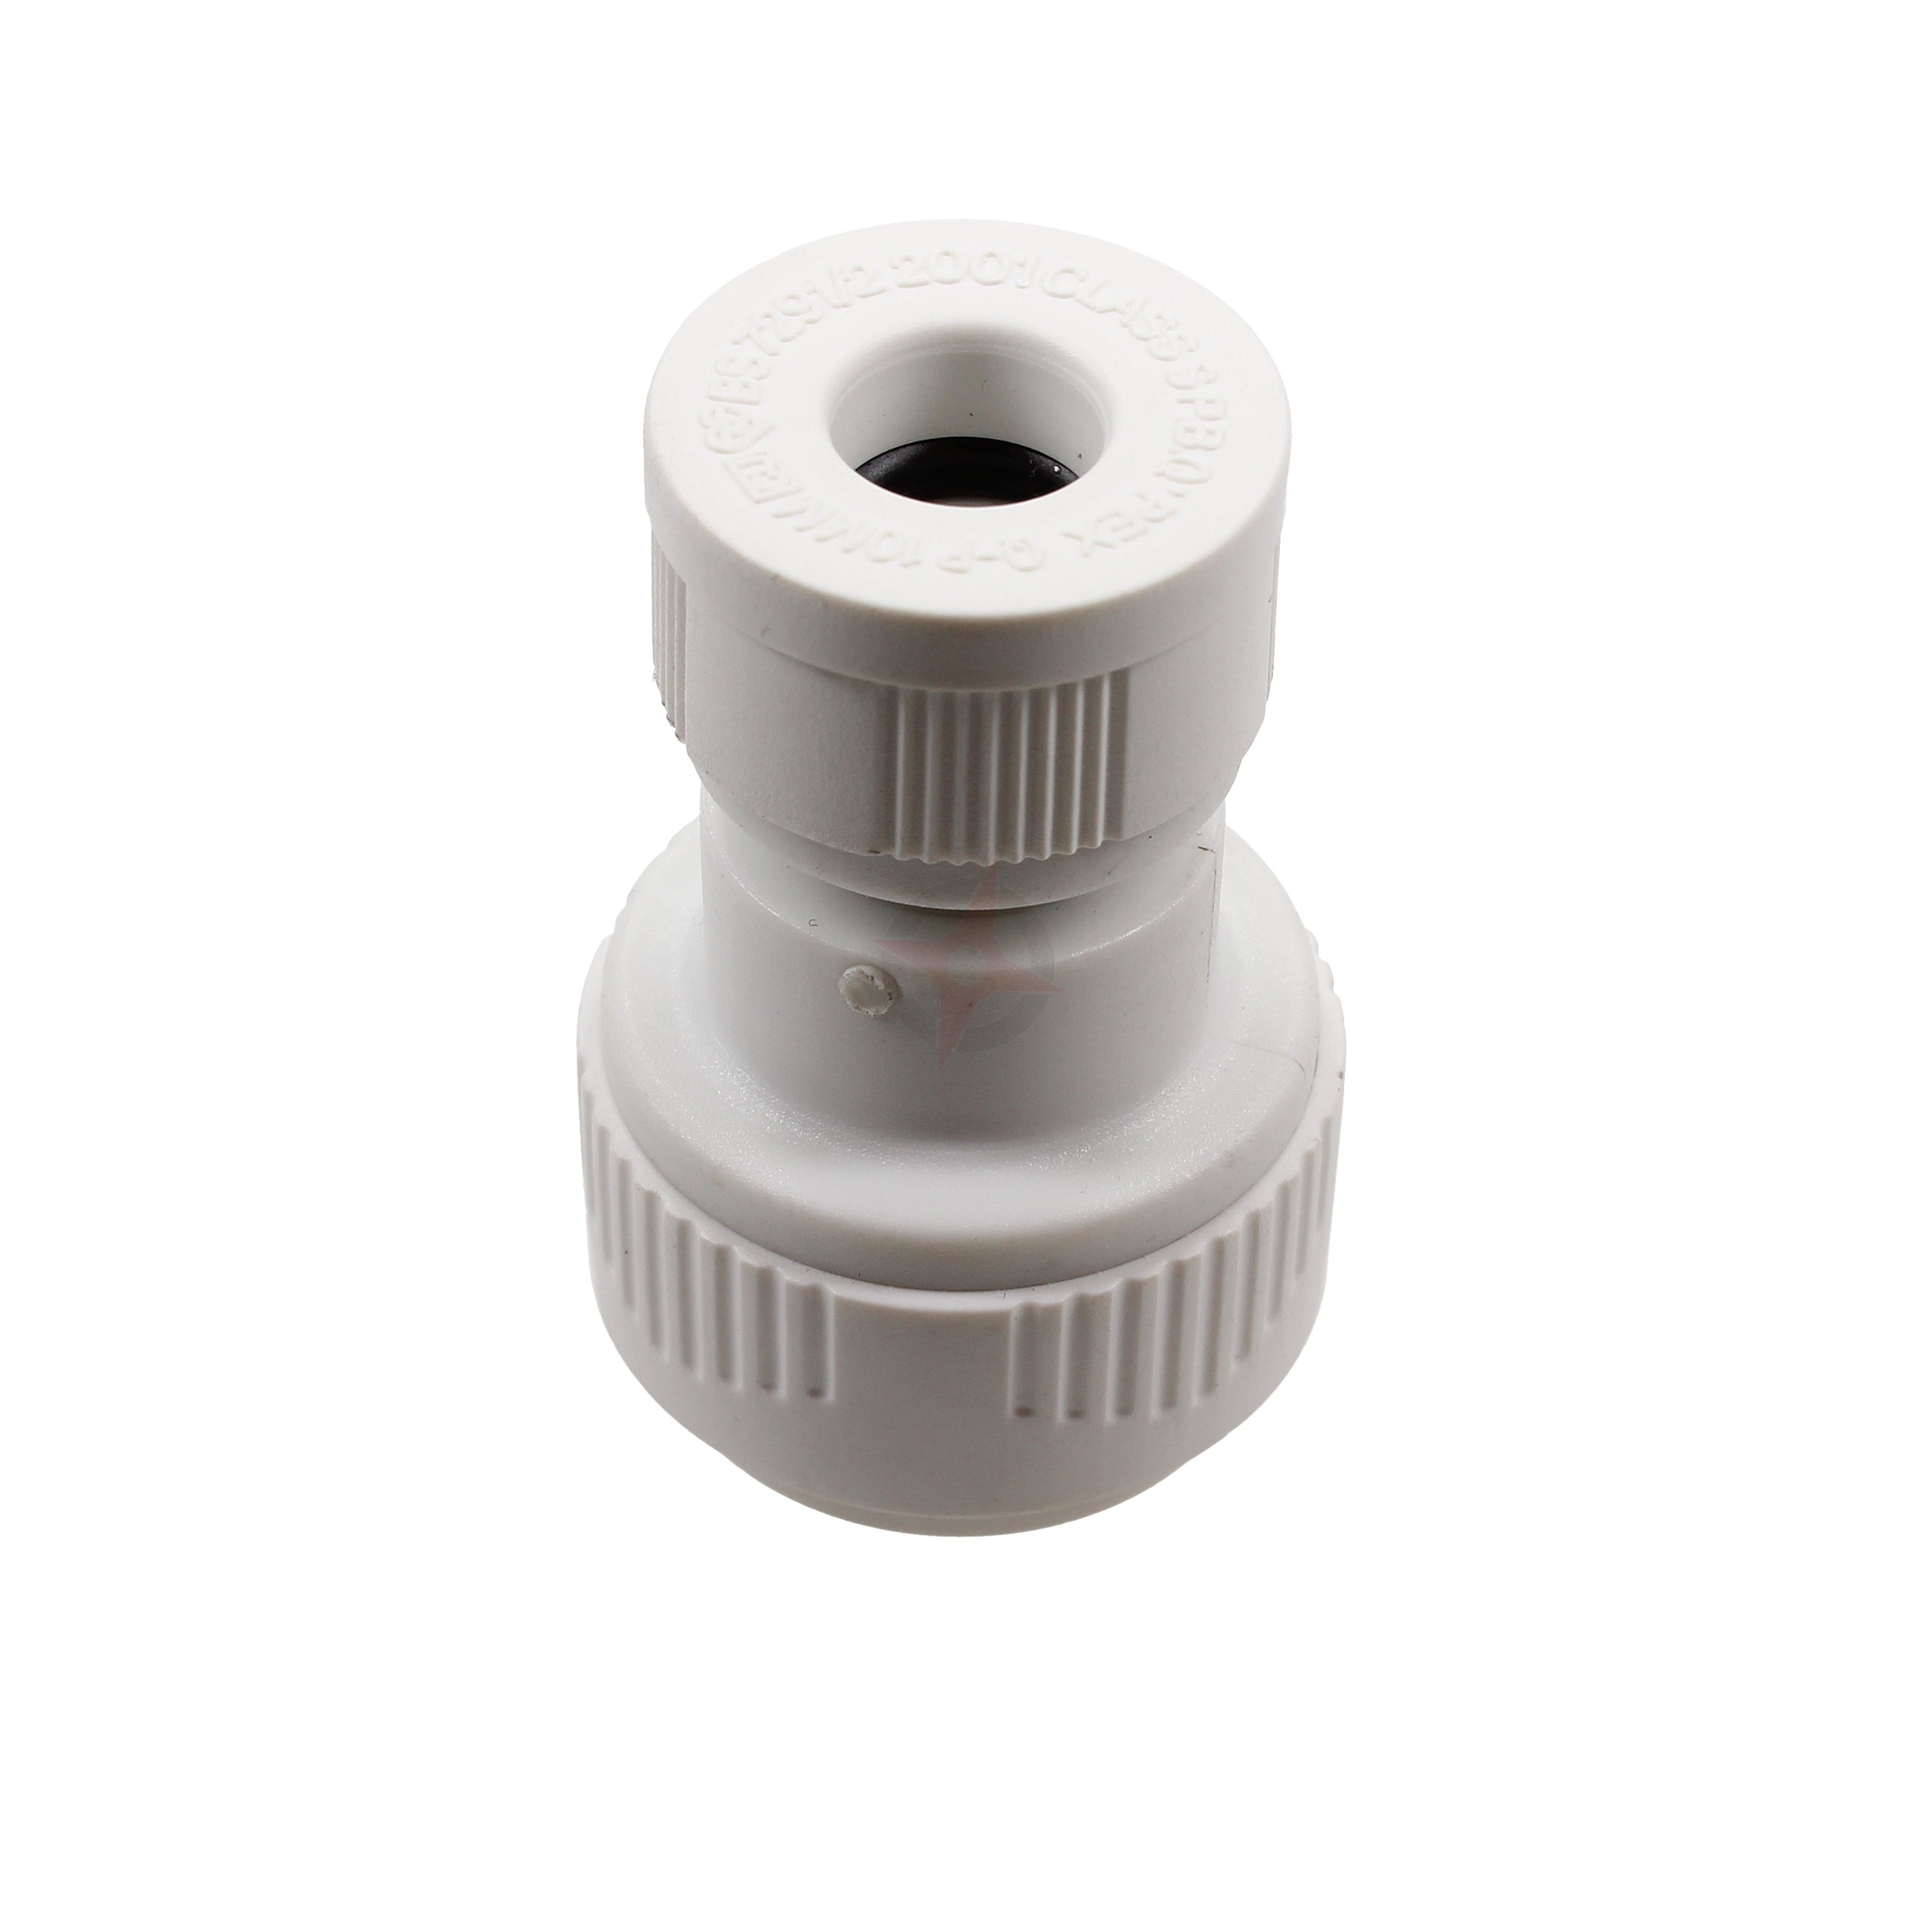 Whitespeed Push Fit 15mm x 10mm  Reducing Coupler